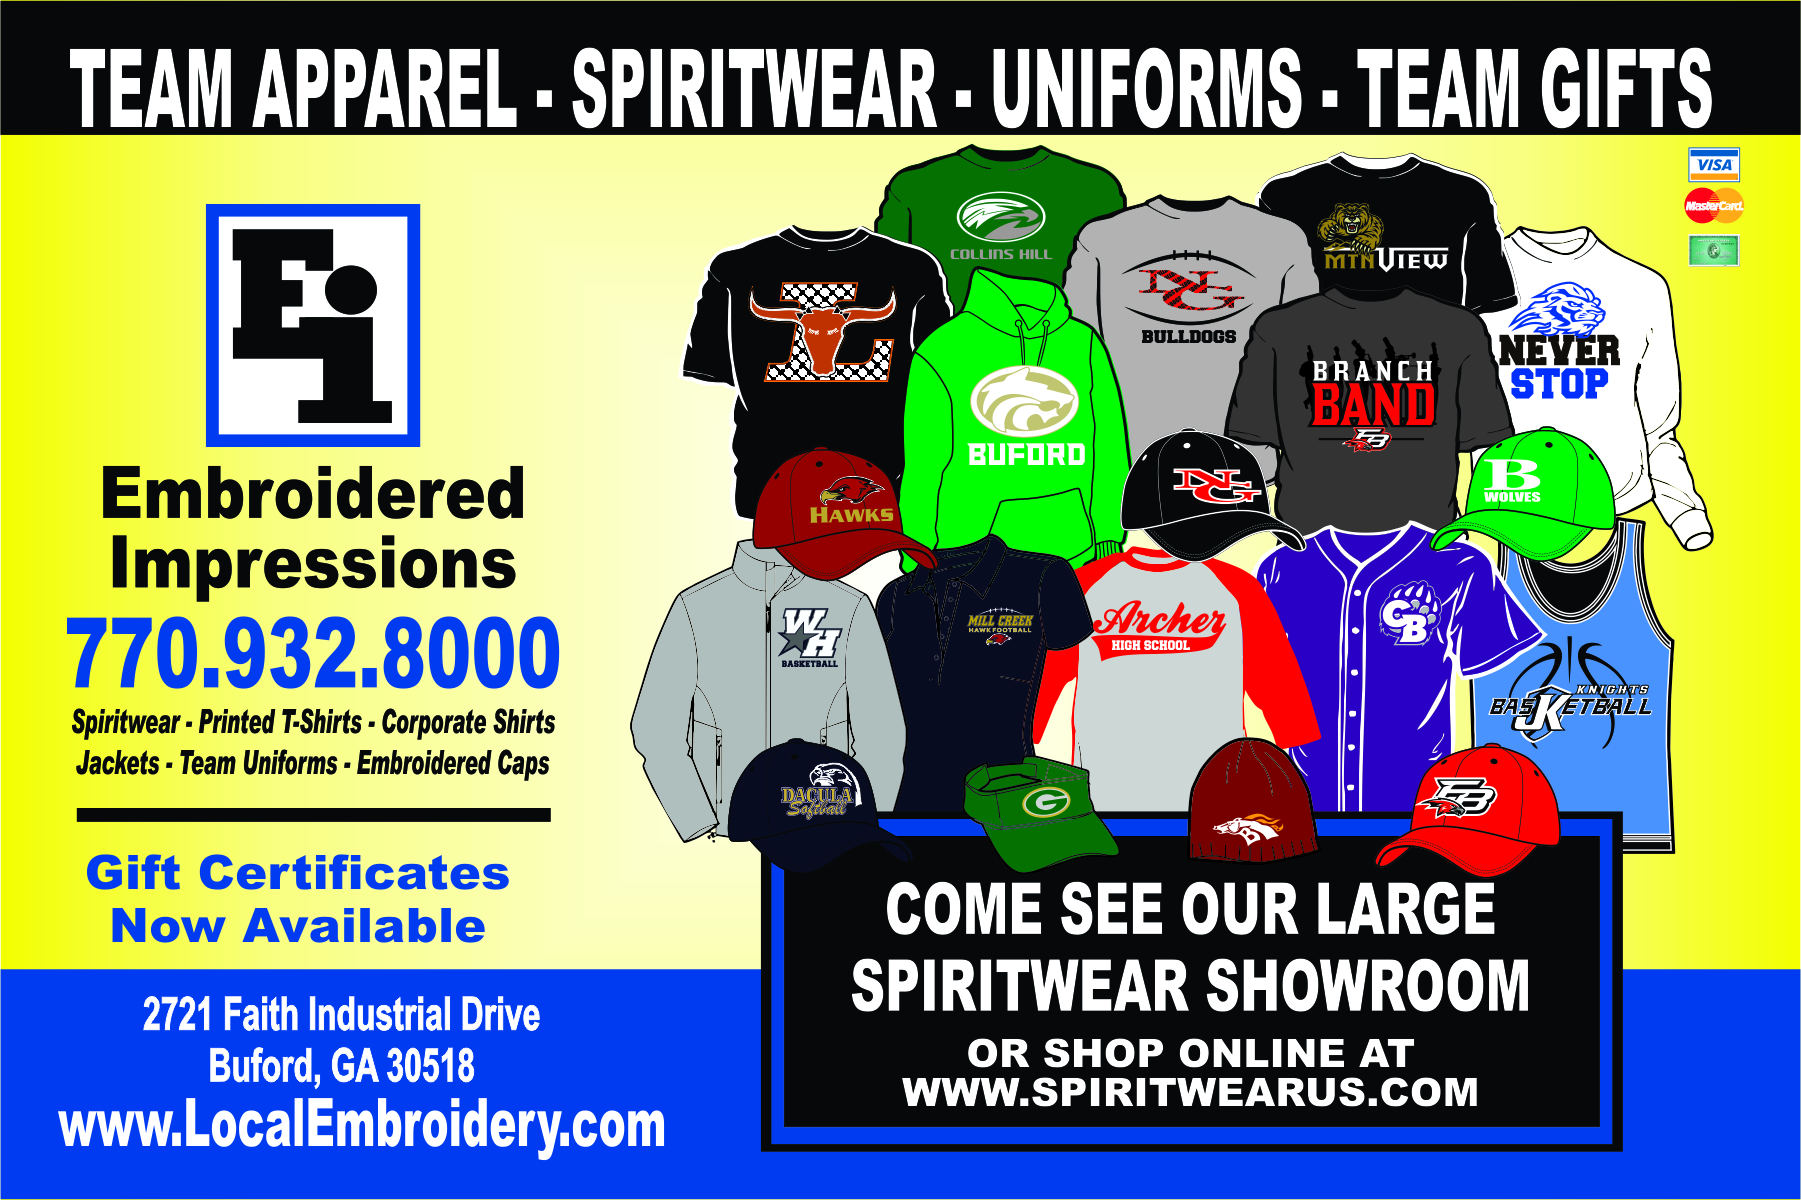 School Spiritwear and Uniforms